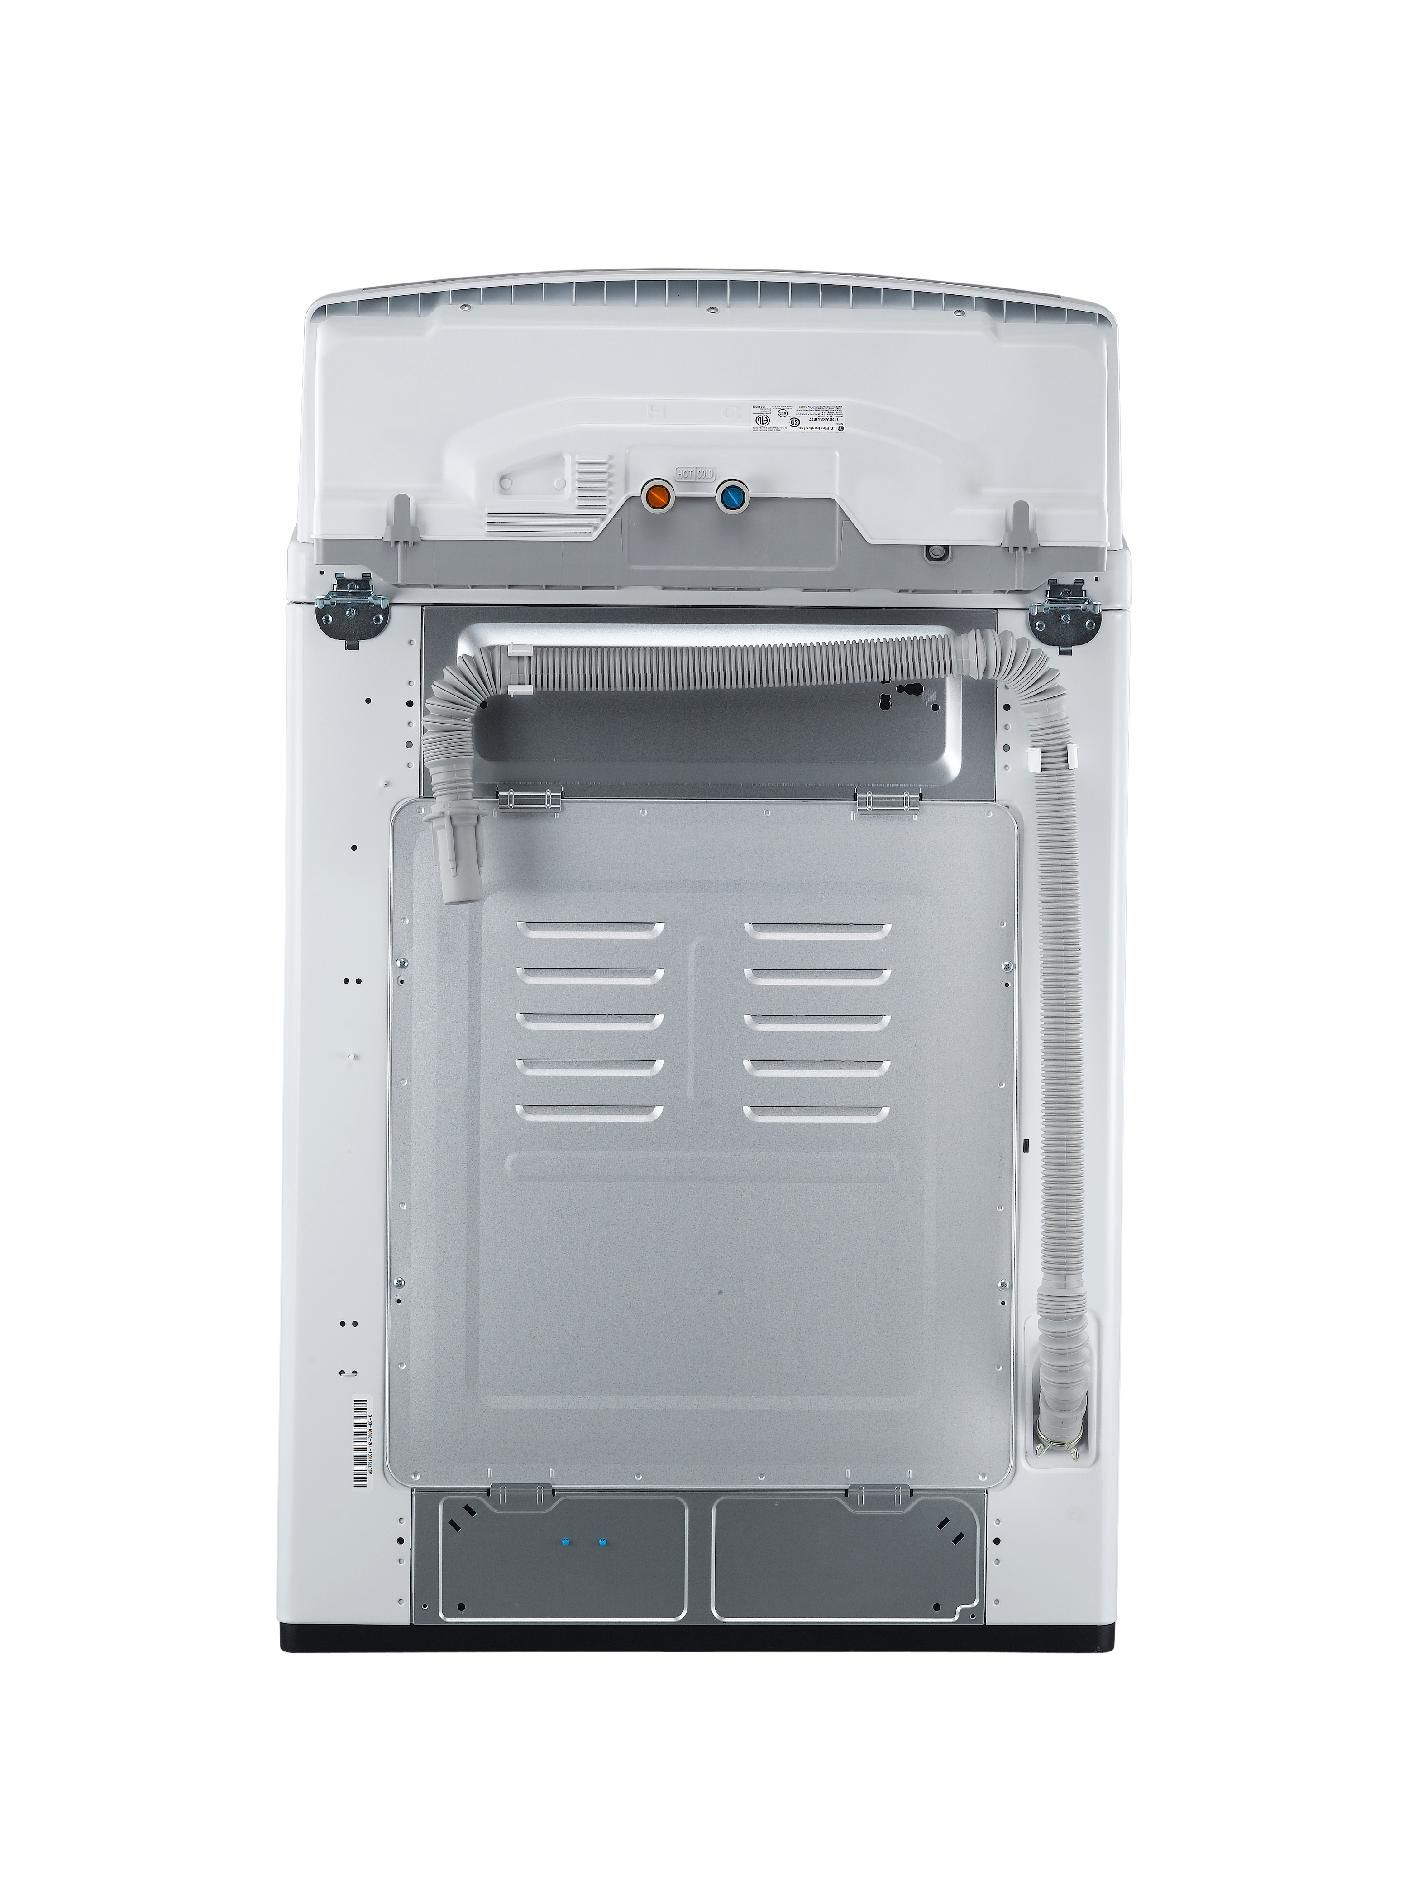 LG 4.7 cu. ft. Ultra Large Capacity High-Efficiency Top Load Washer w/ WaveForce™ - White